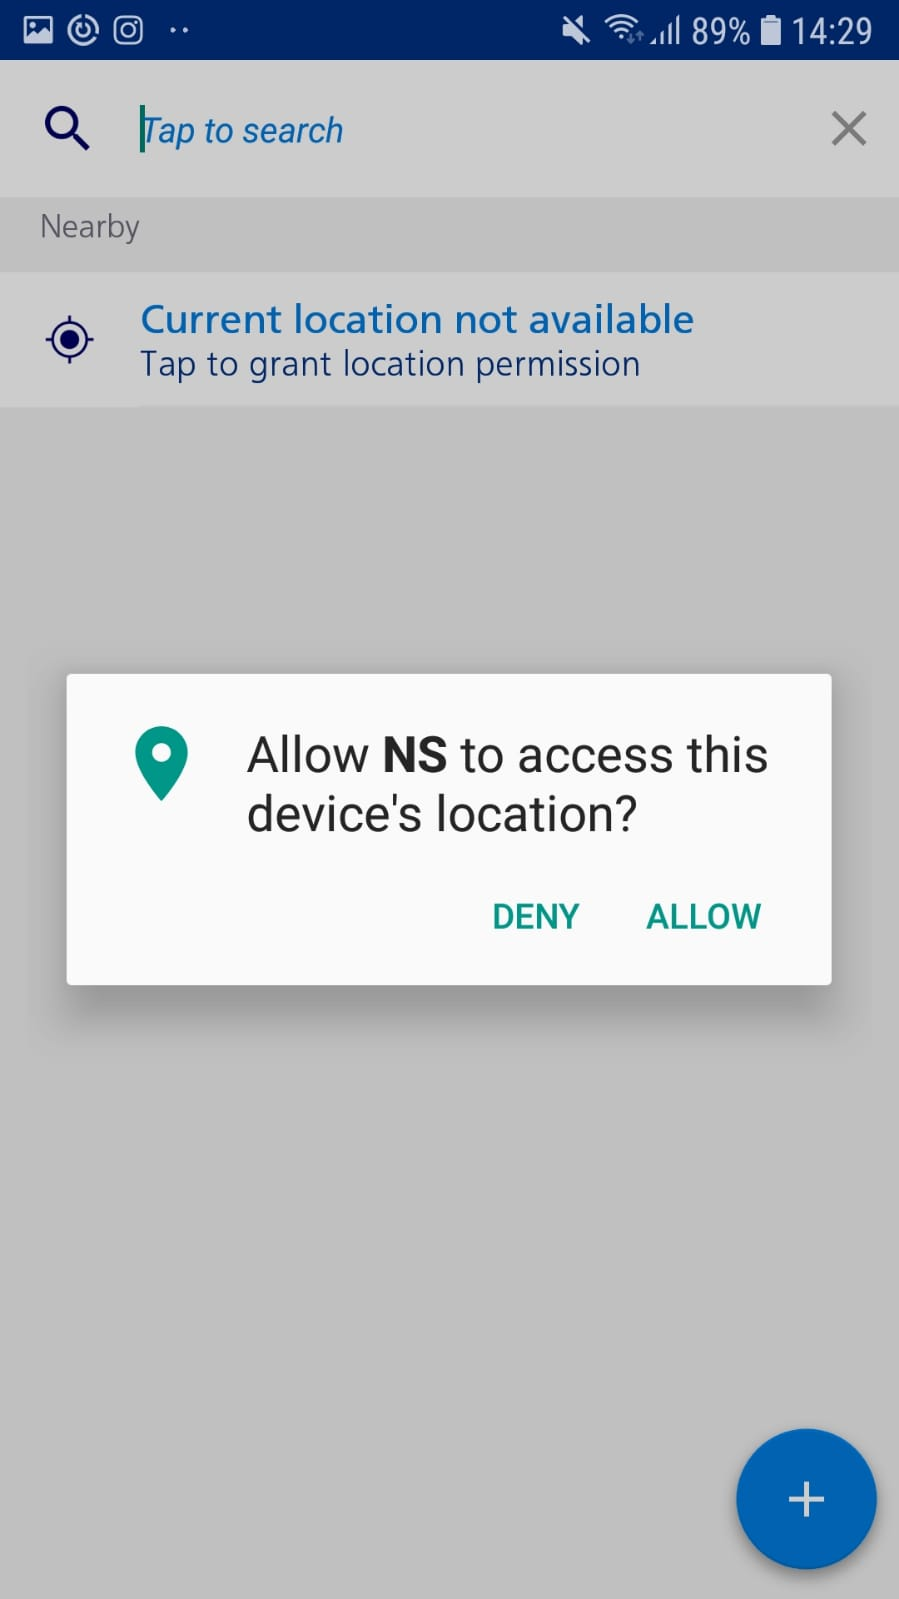 Example how to allow access to location in NS app